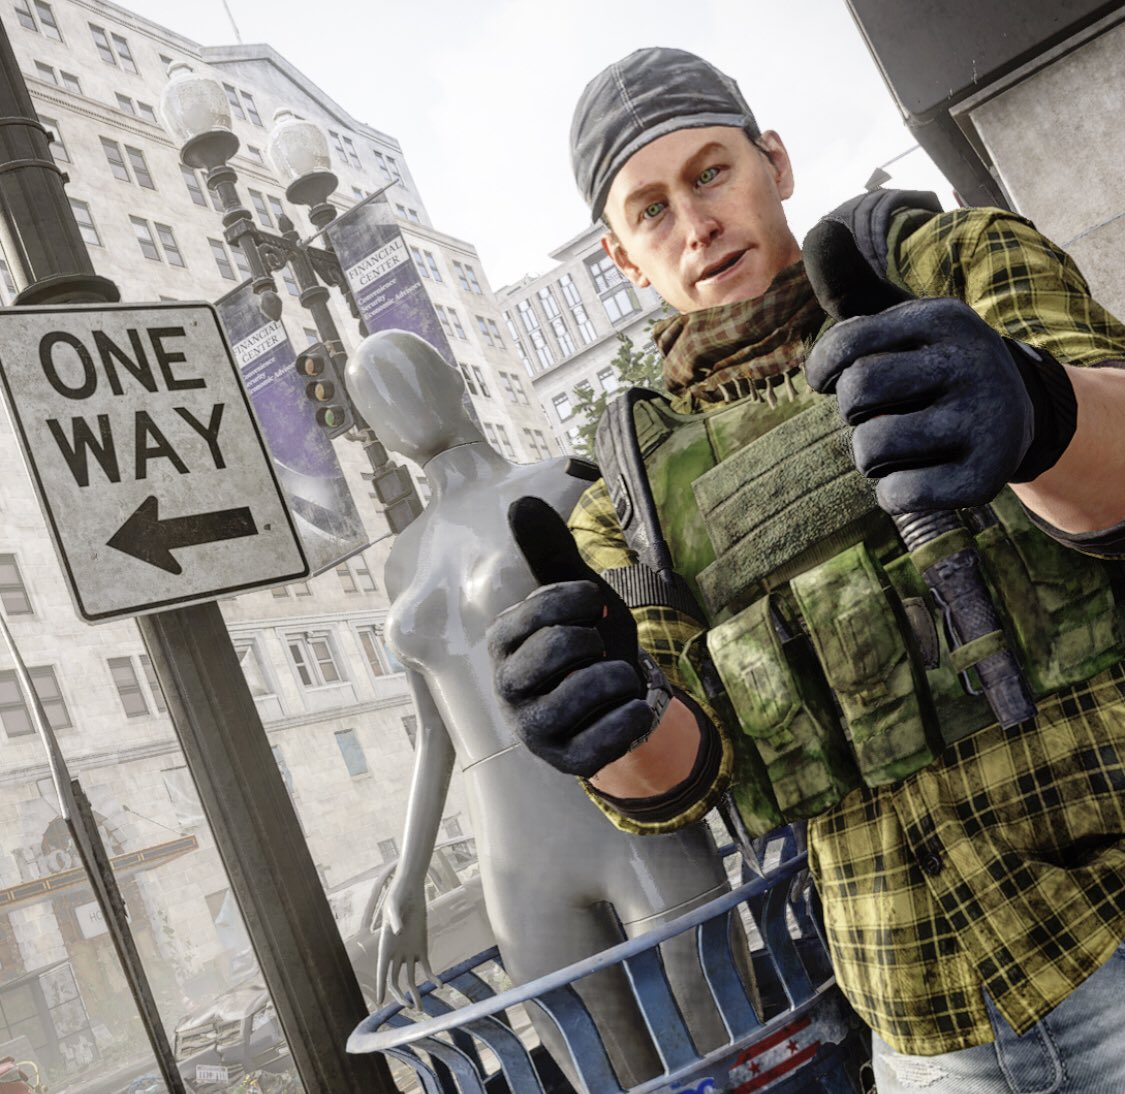 thedivision2photos hashtag on Twitter